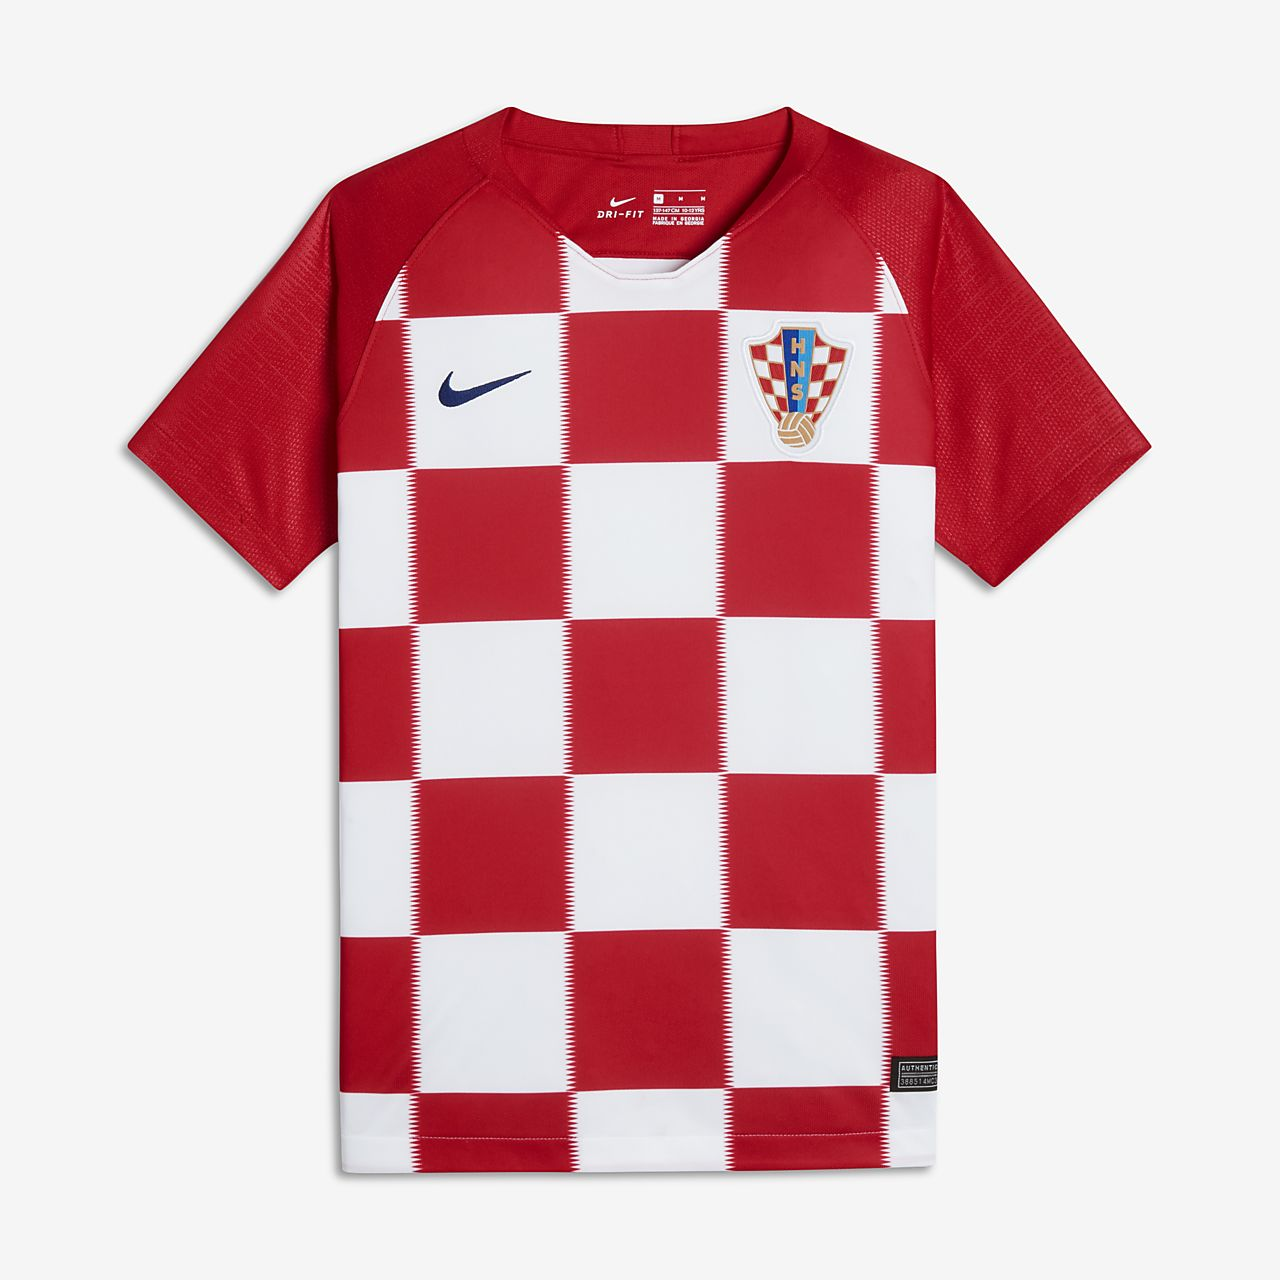 2018 Croatia Stadium Home Older Kids' Football Shirt